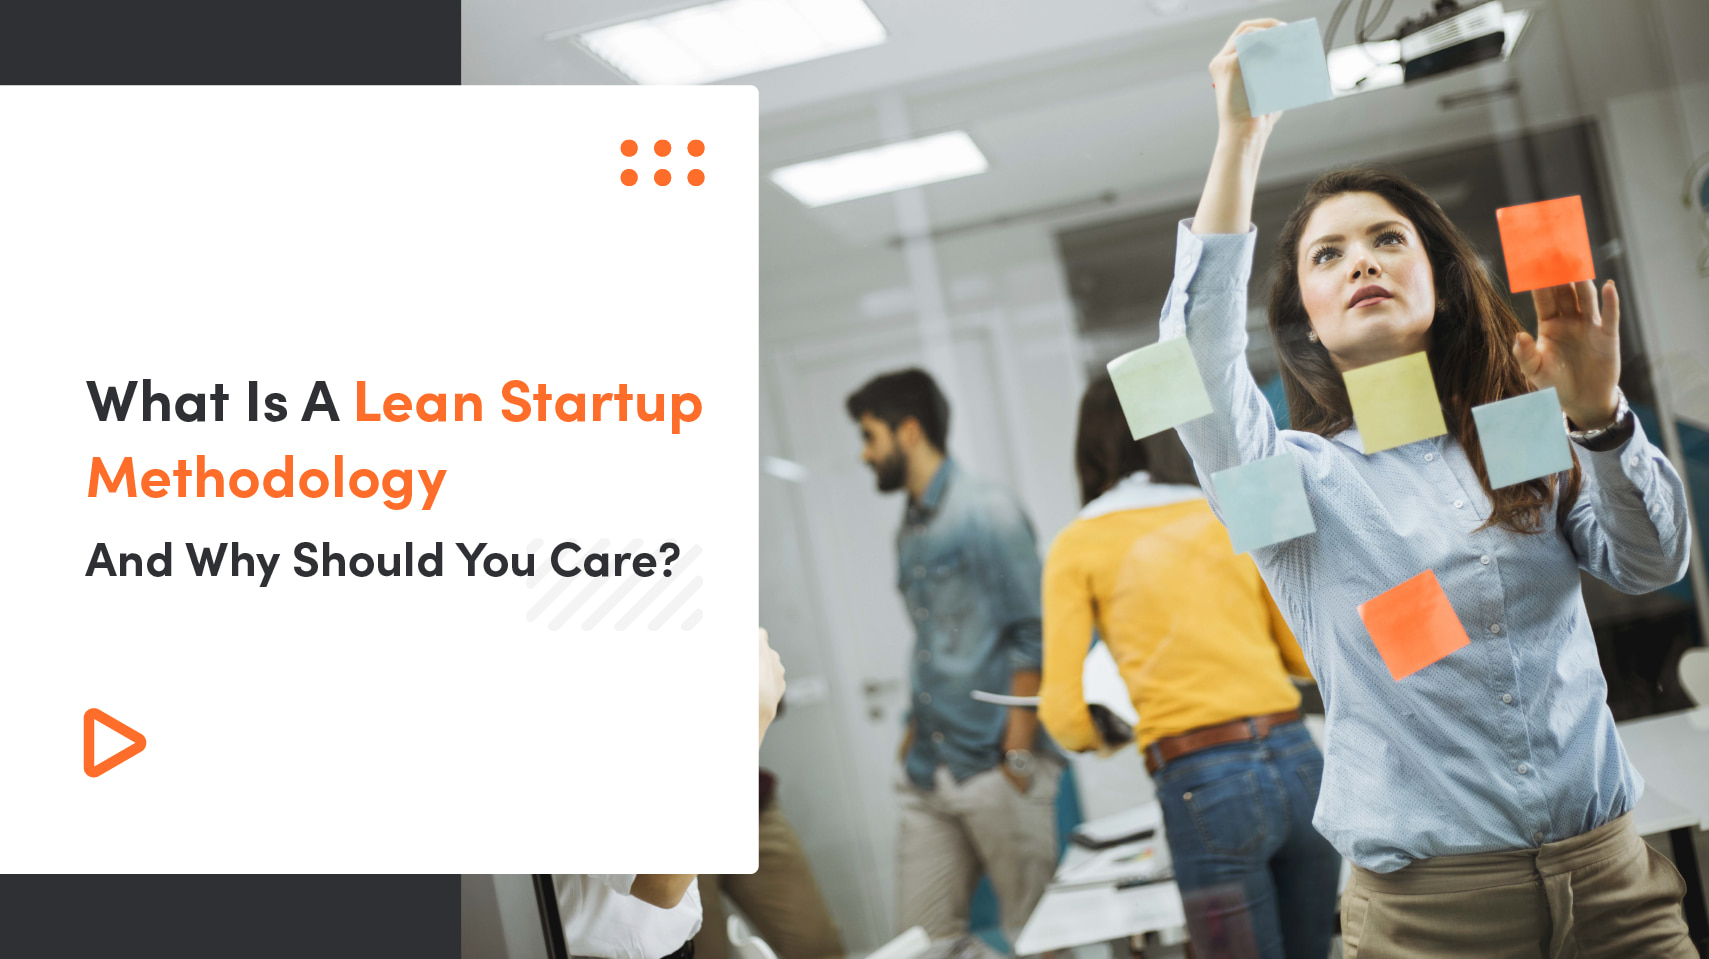 What Is Lean Startup Methodology And Why Should You Care?